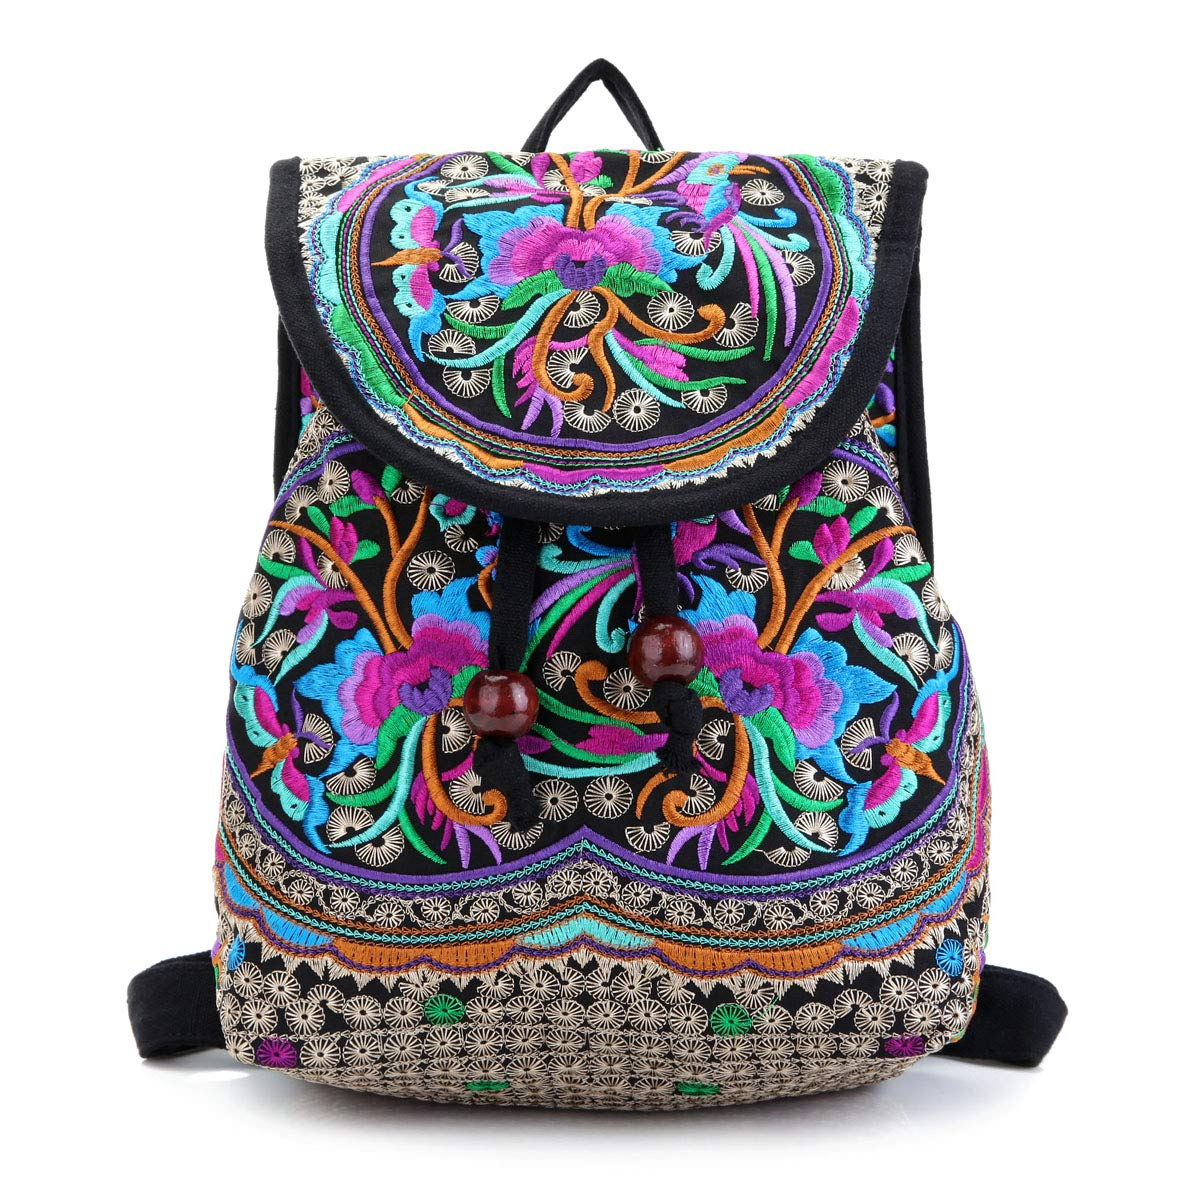 2c311ff0ec12 Embroidery Canvas Backpack Purse for Women, Small Drawstring Casual Travel  Shoulder Bag Daypack